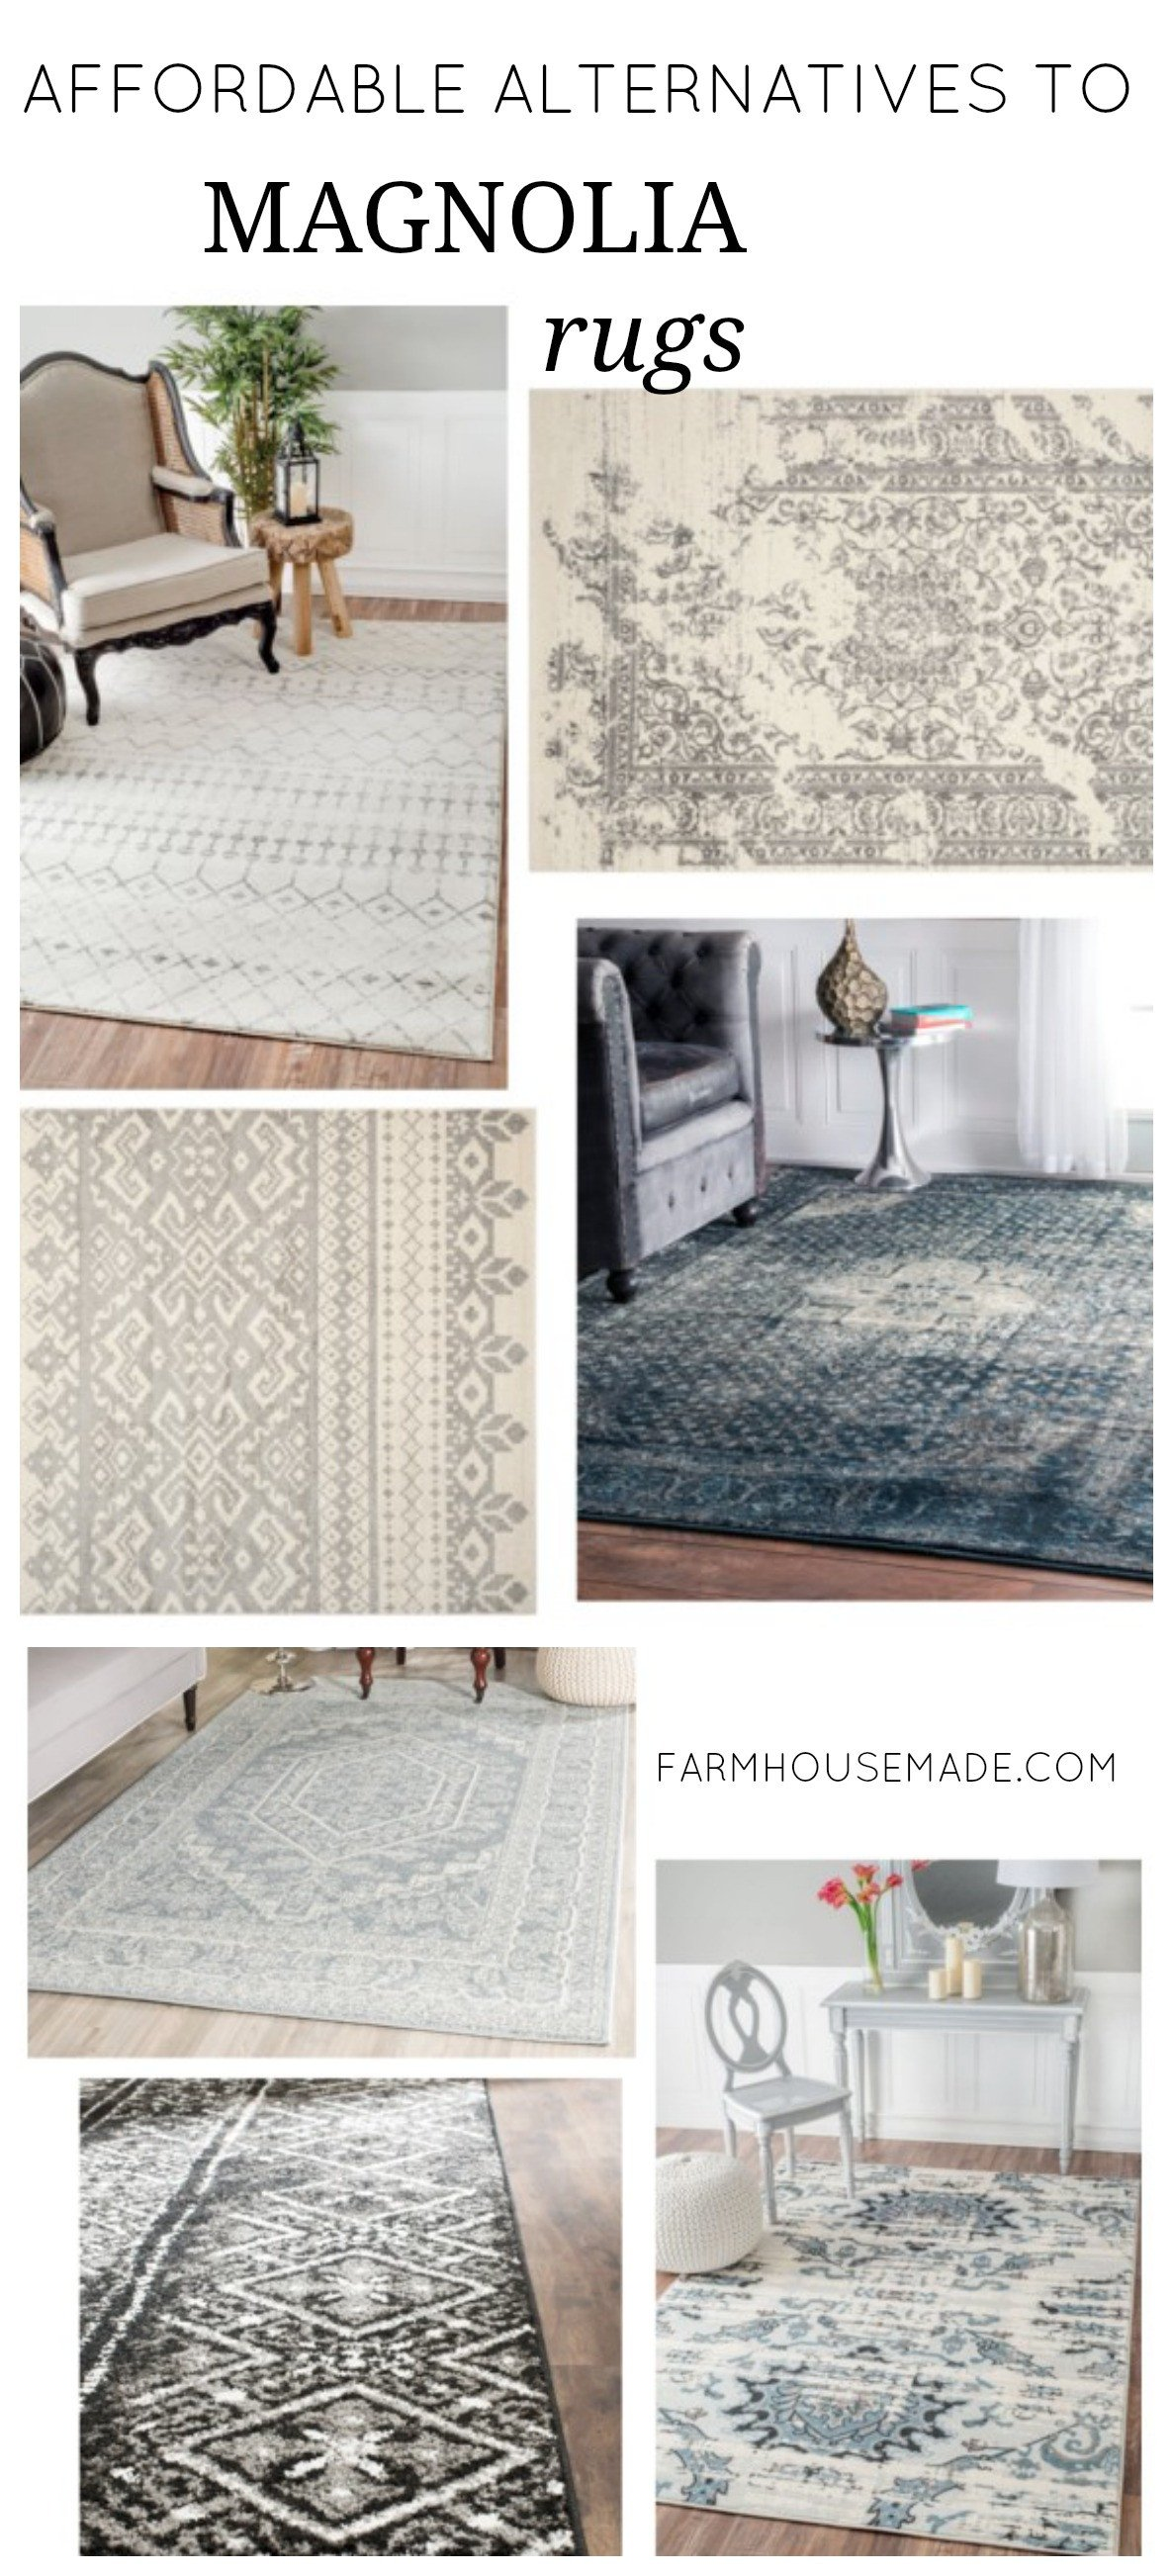 Farmhouse Living Room with Rug Lovely What to Do when You Can T Afford Joanna S Rugs Farmhouse Made